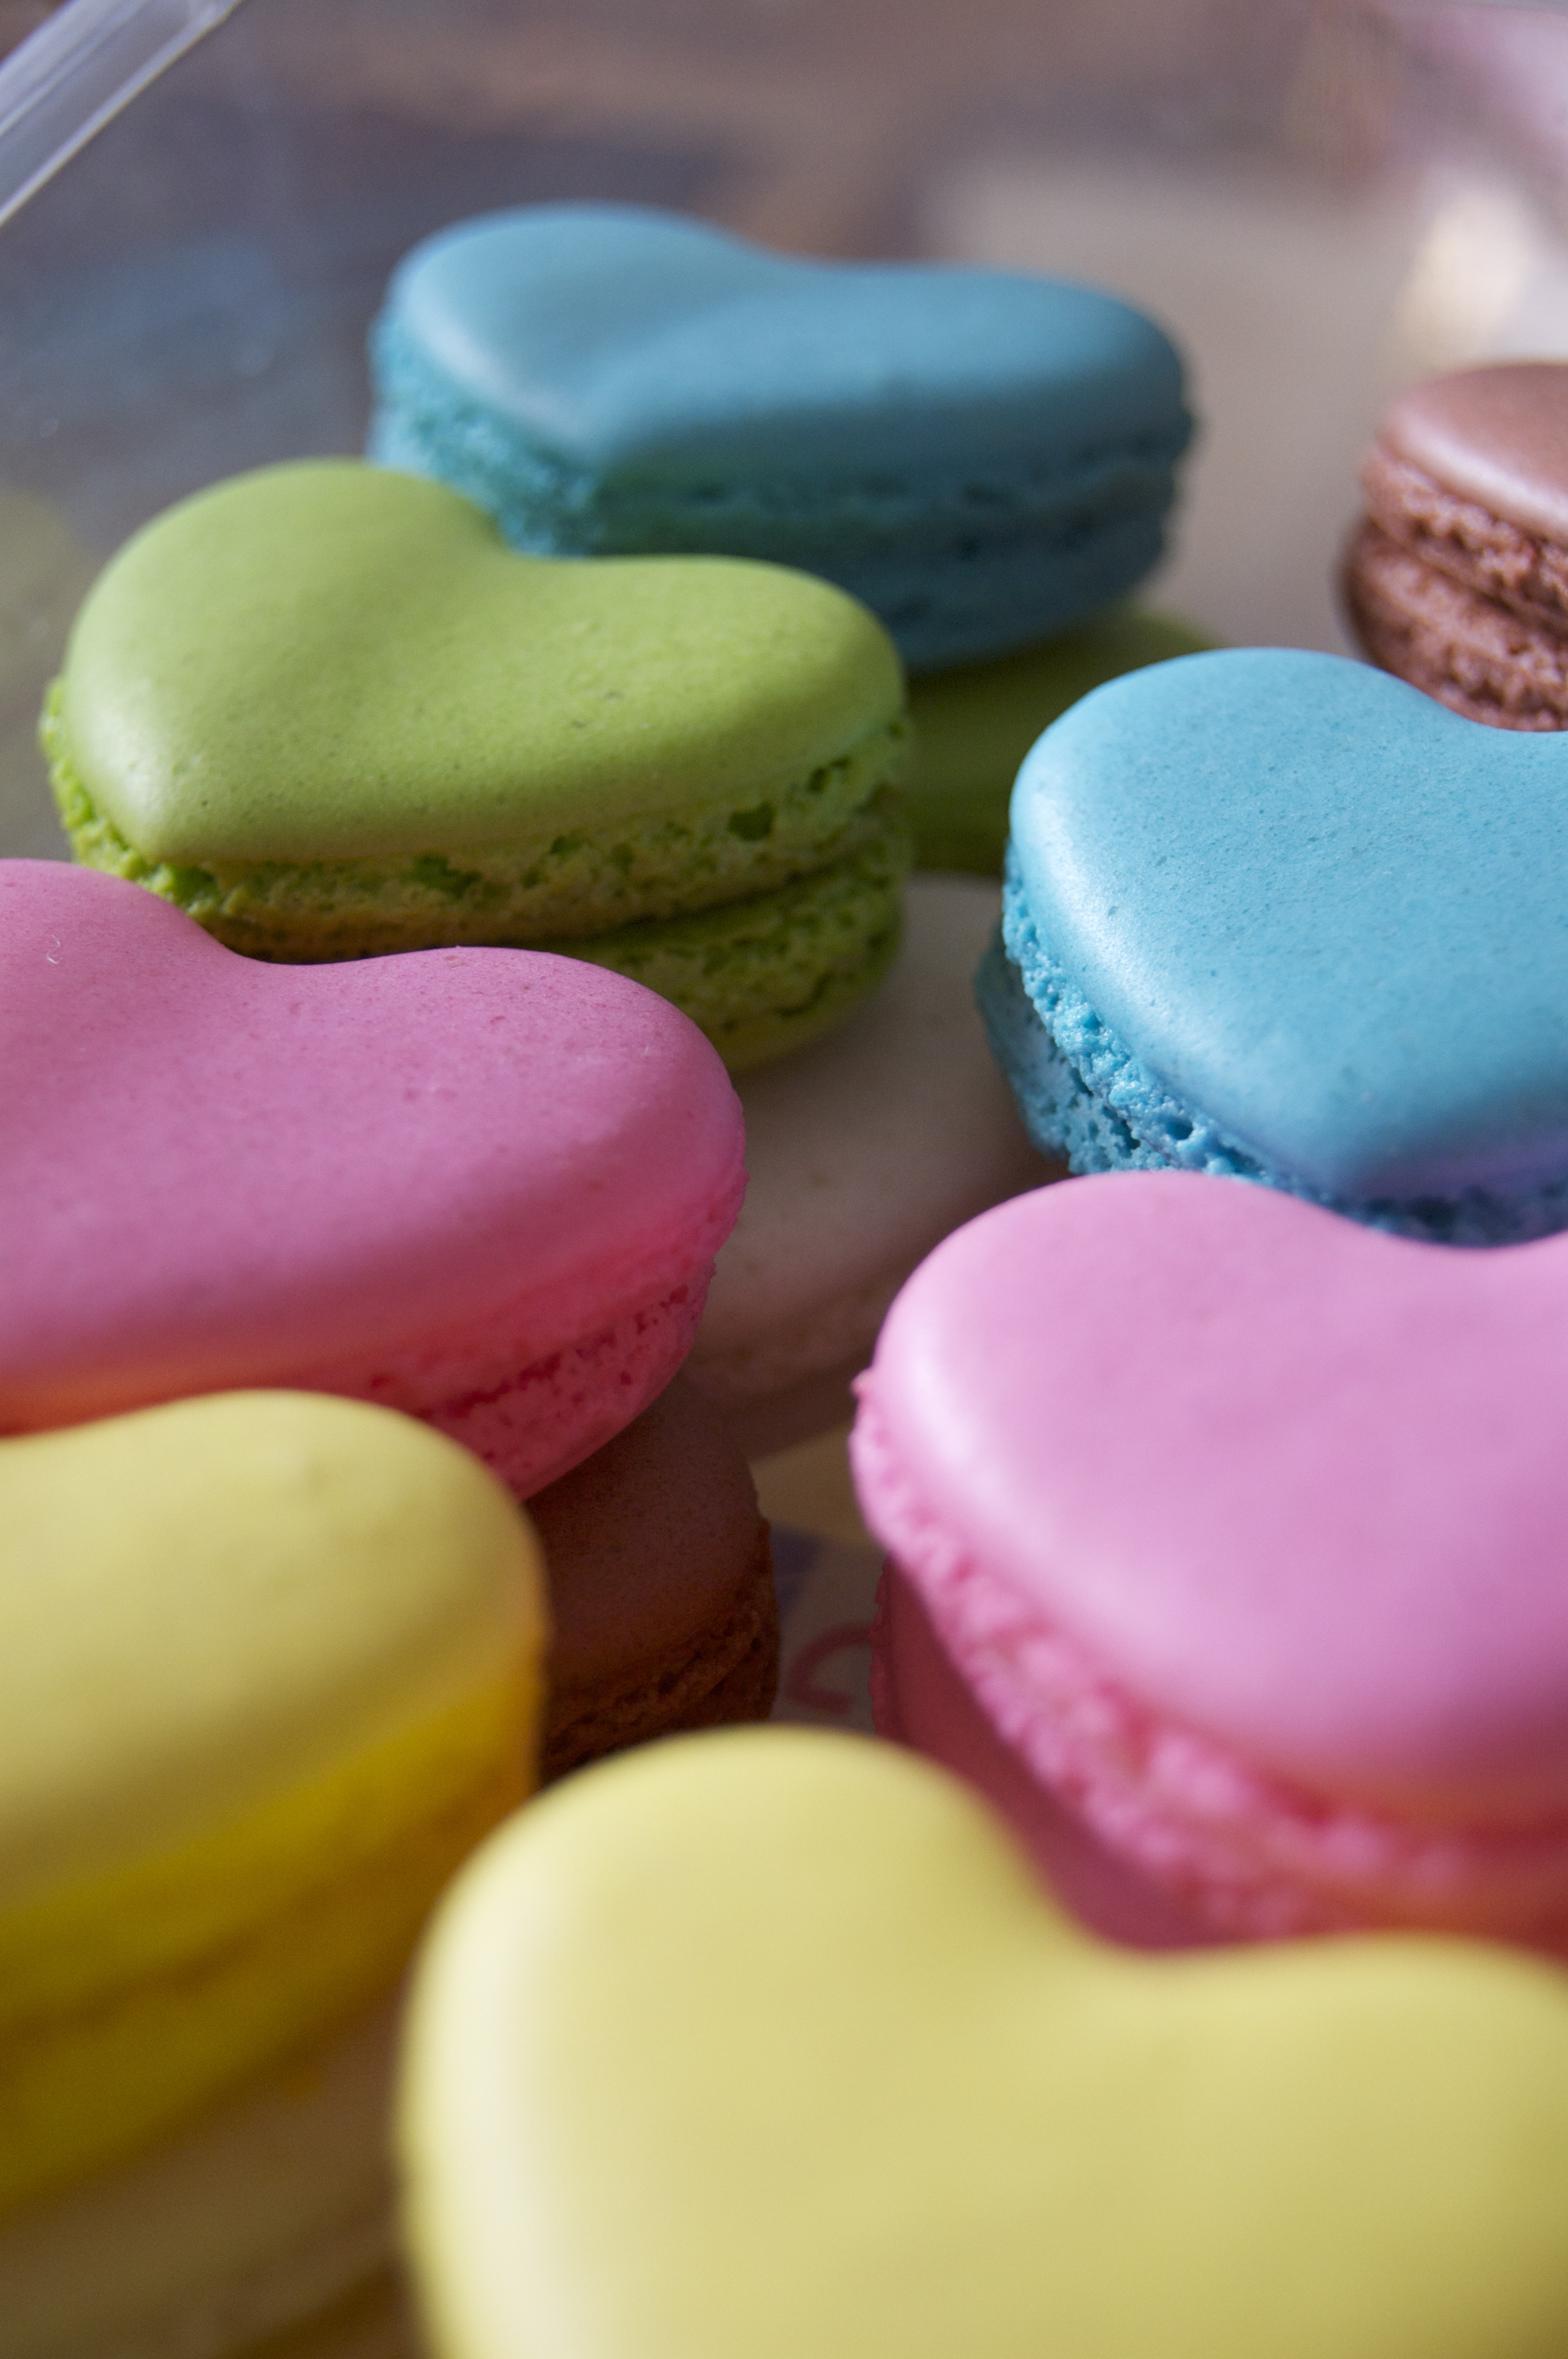 Hengheng's heart-shaped macaroons.